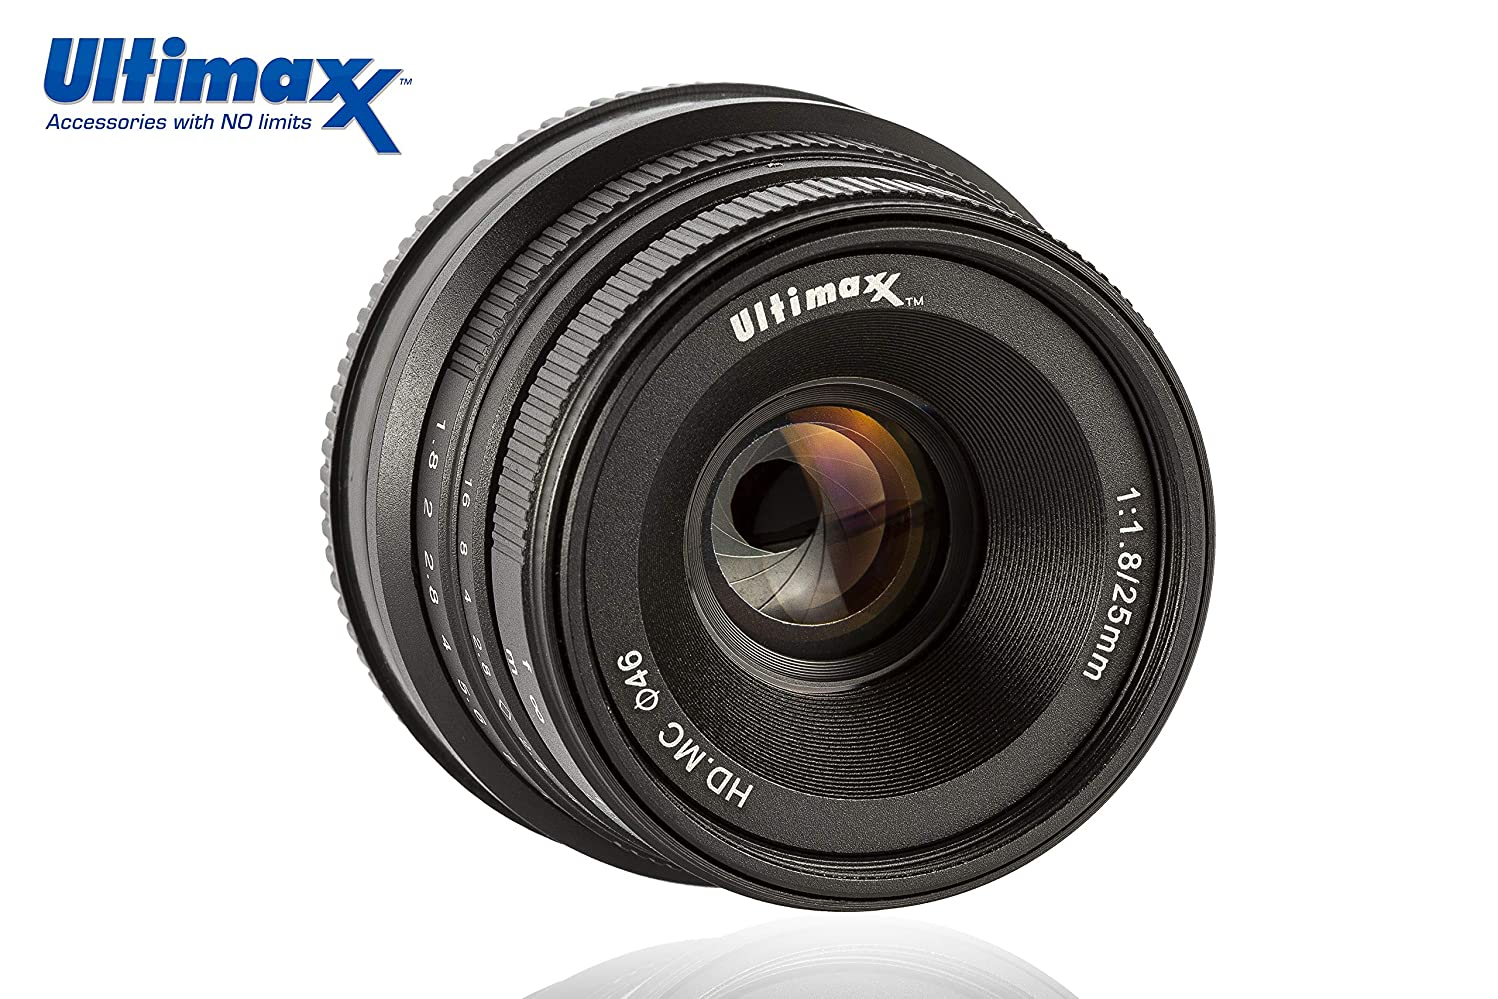 Ultimaxx 25MM f/1.8 Manual Lens for Sony E-Mount (NEX) Mirrorless Cameras A7III A9 NEX 3 3N 5 NEX 5T NEX 5R NEX 6 7 A5000 A5100 A6000 A6100 A6300 A6500